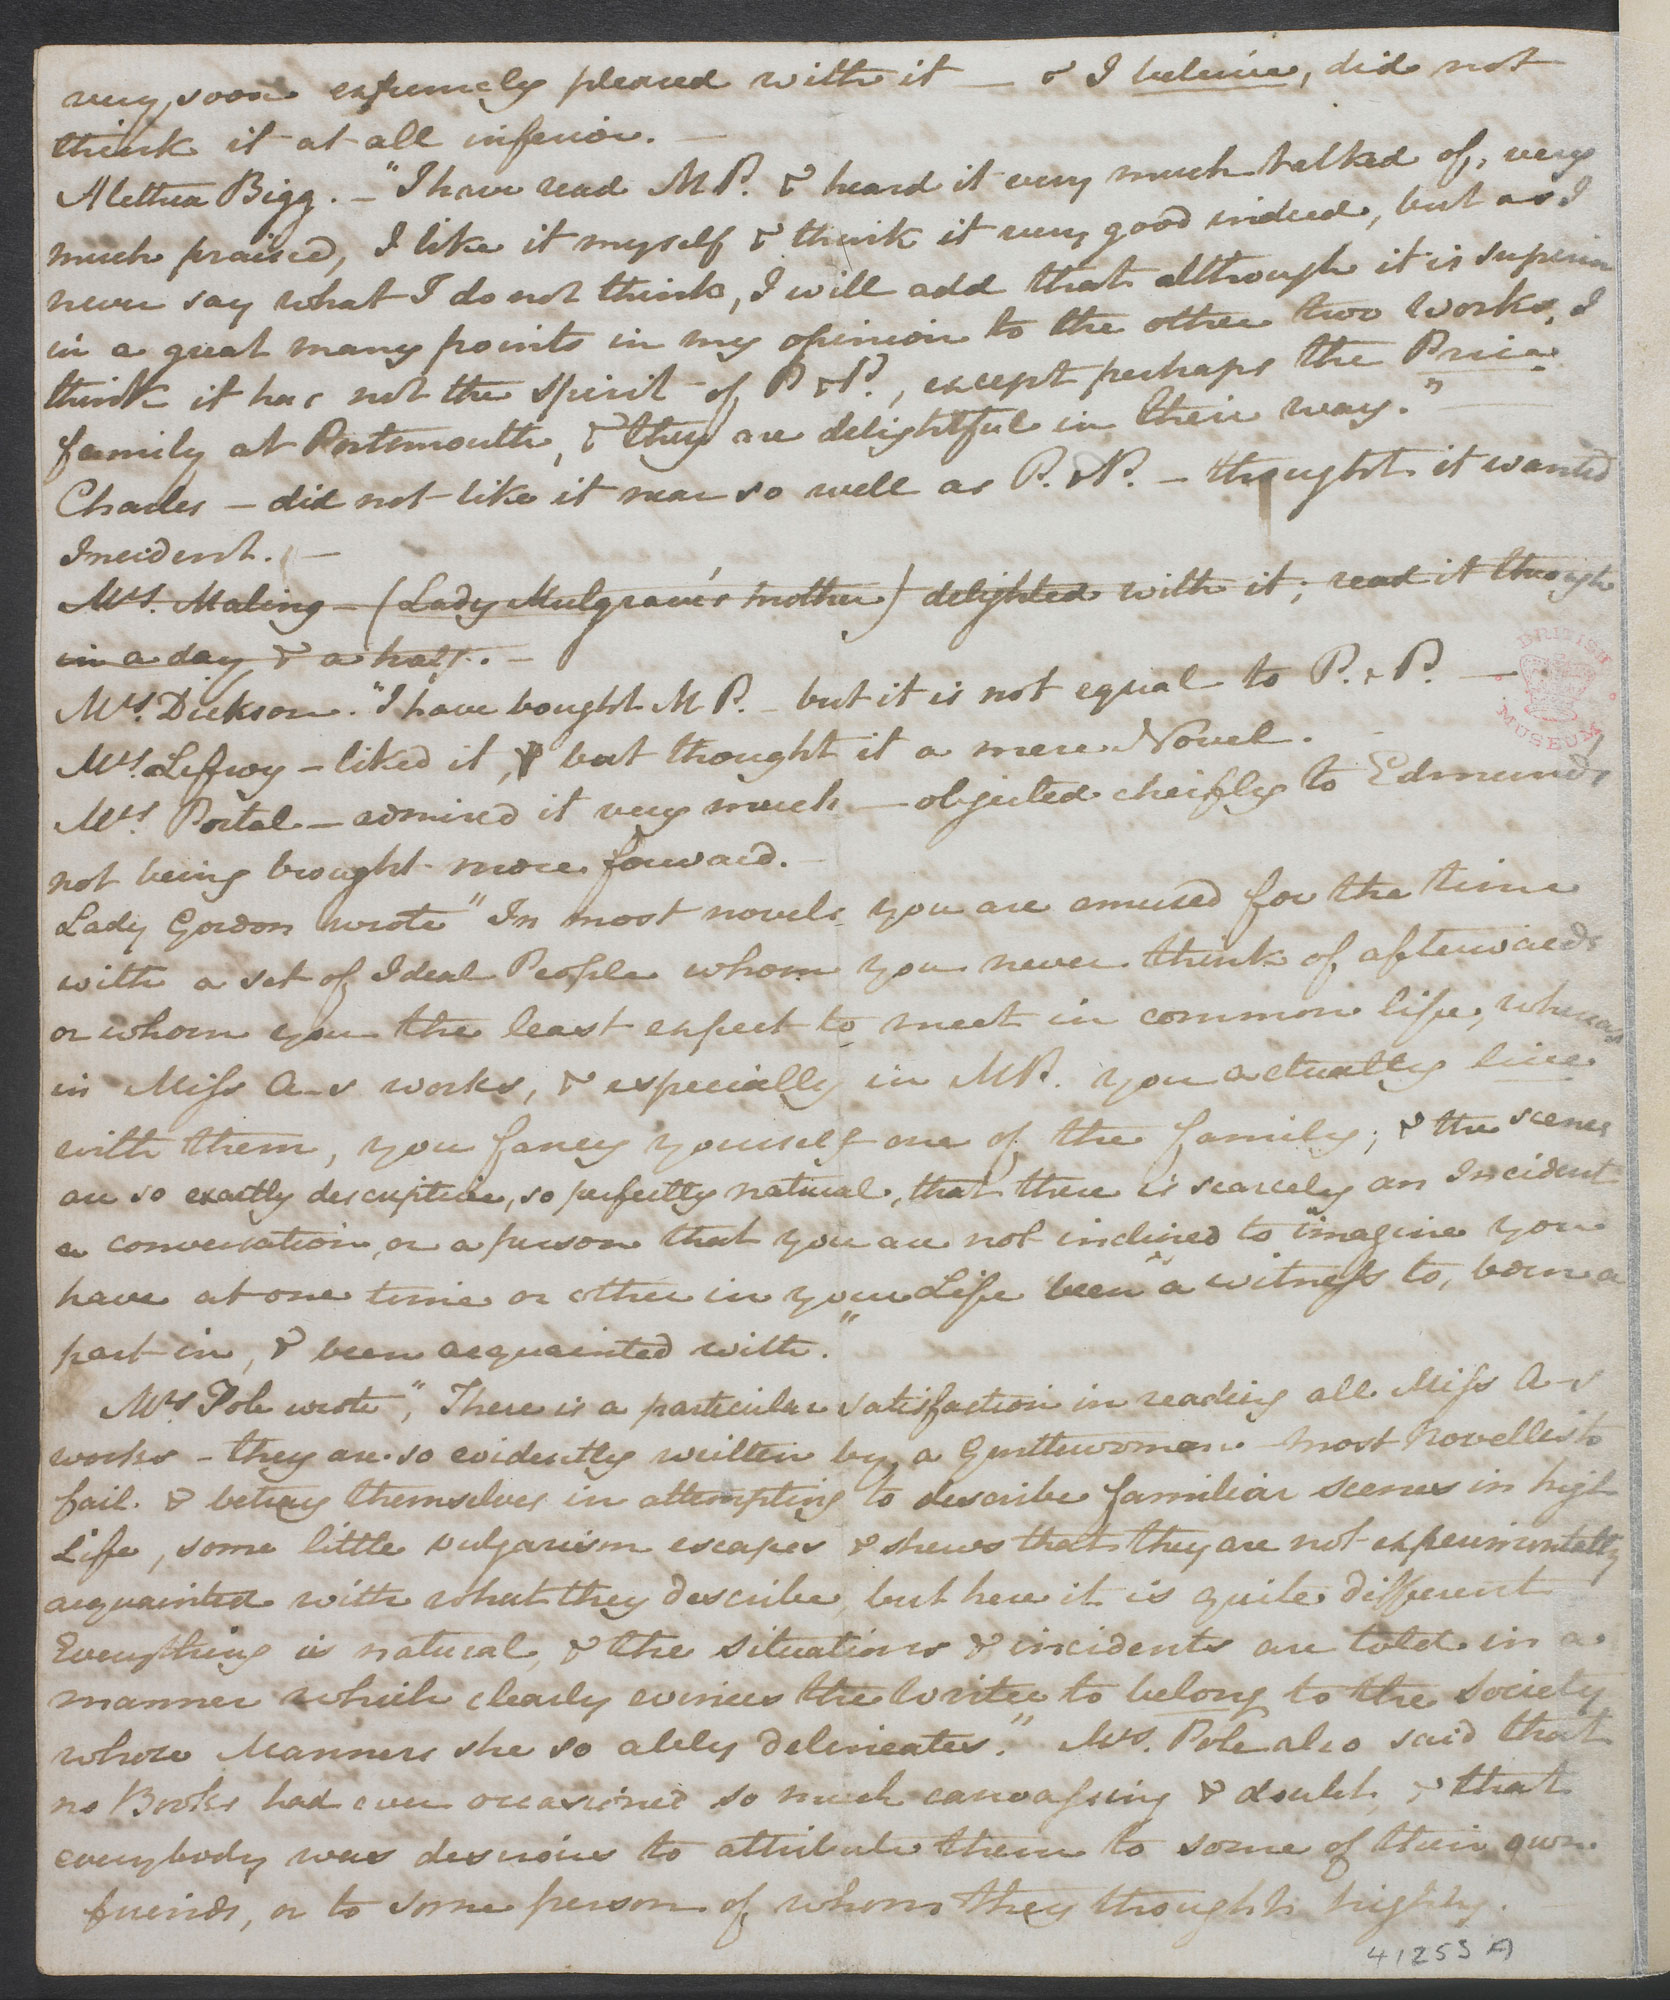 Jane Austen: social realism and the novel - The British Library